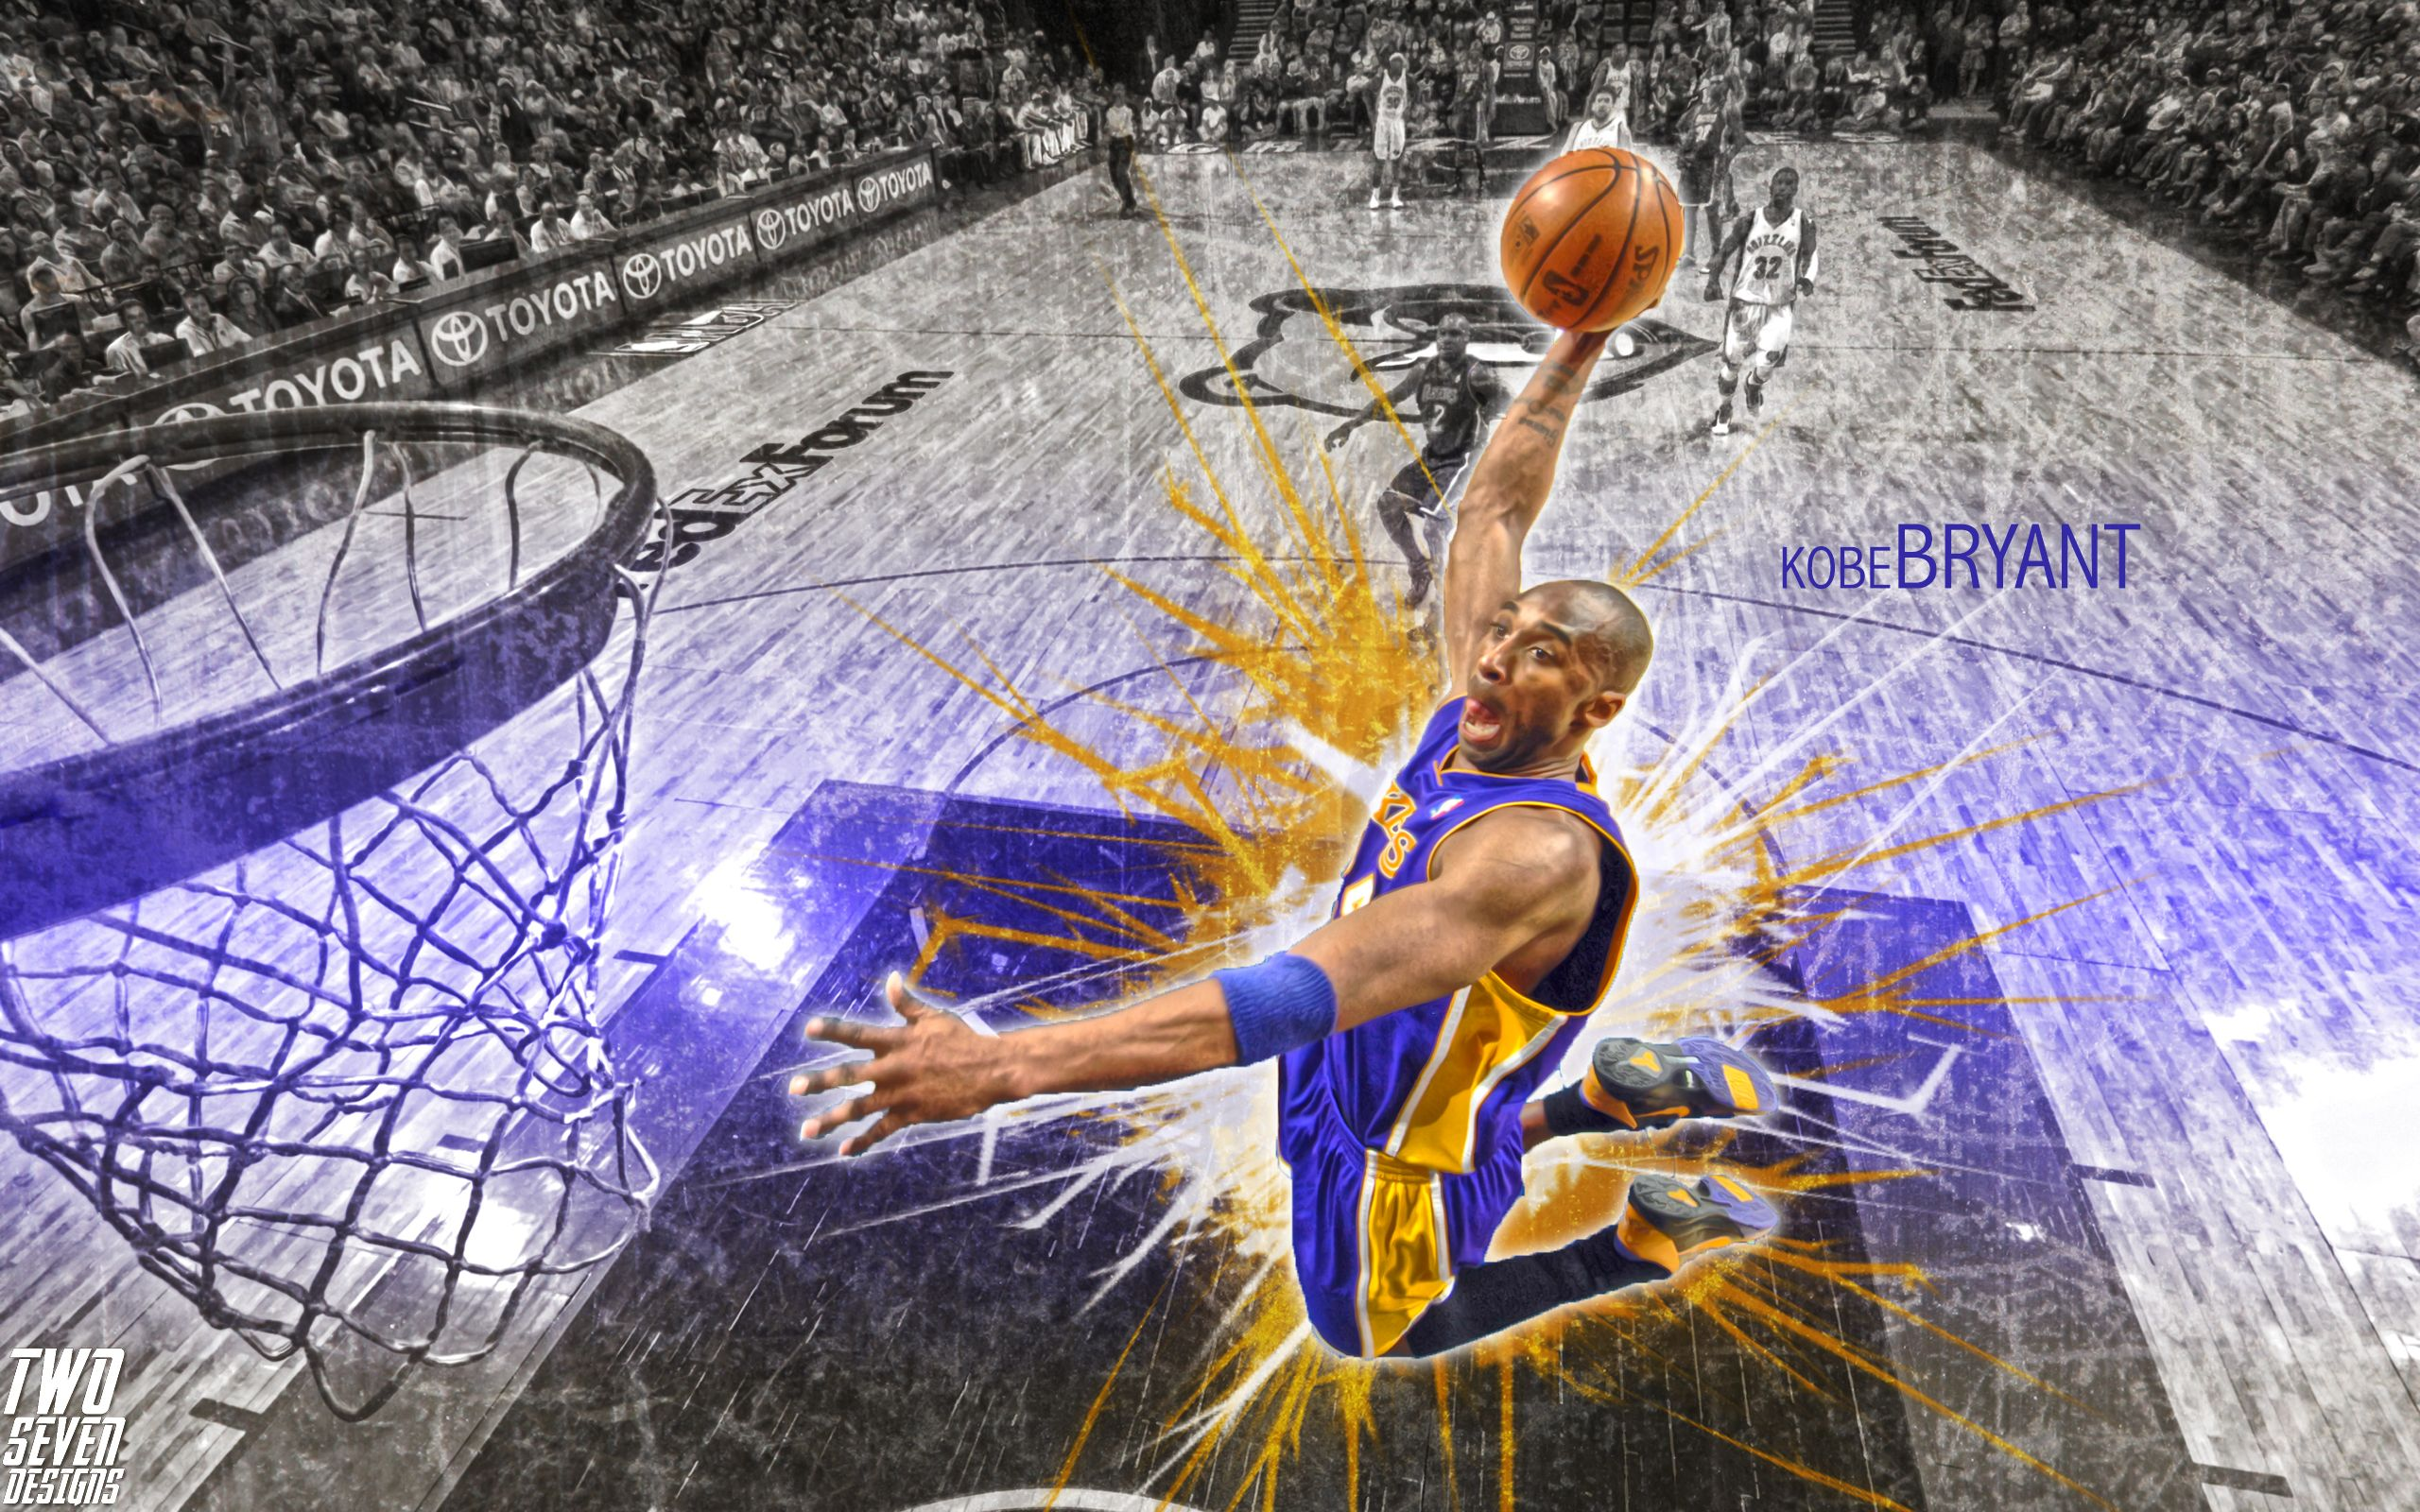 Kobe Bryant Dunk Wallpaper CT21 Kobe bryant dunk, Kobe